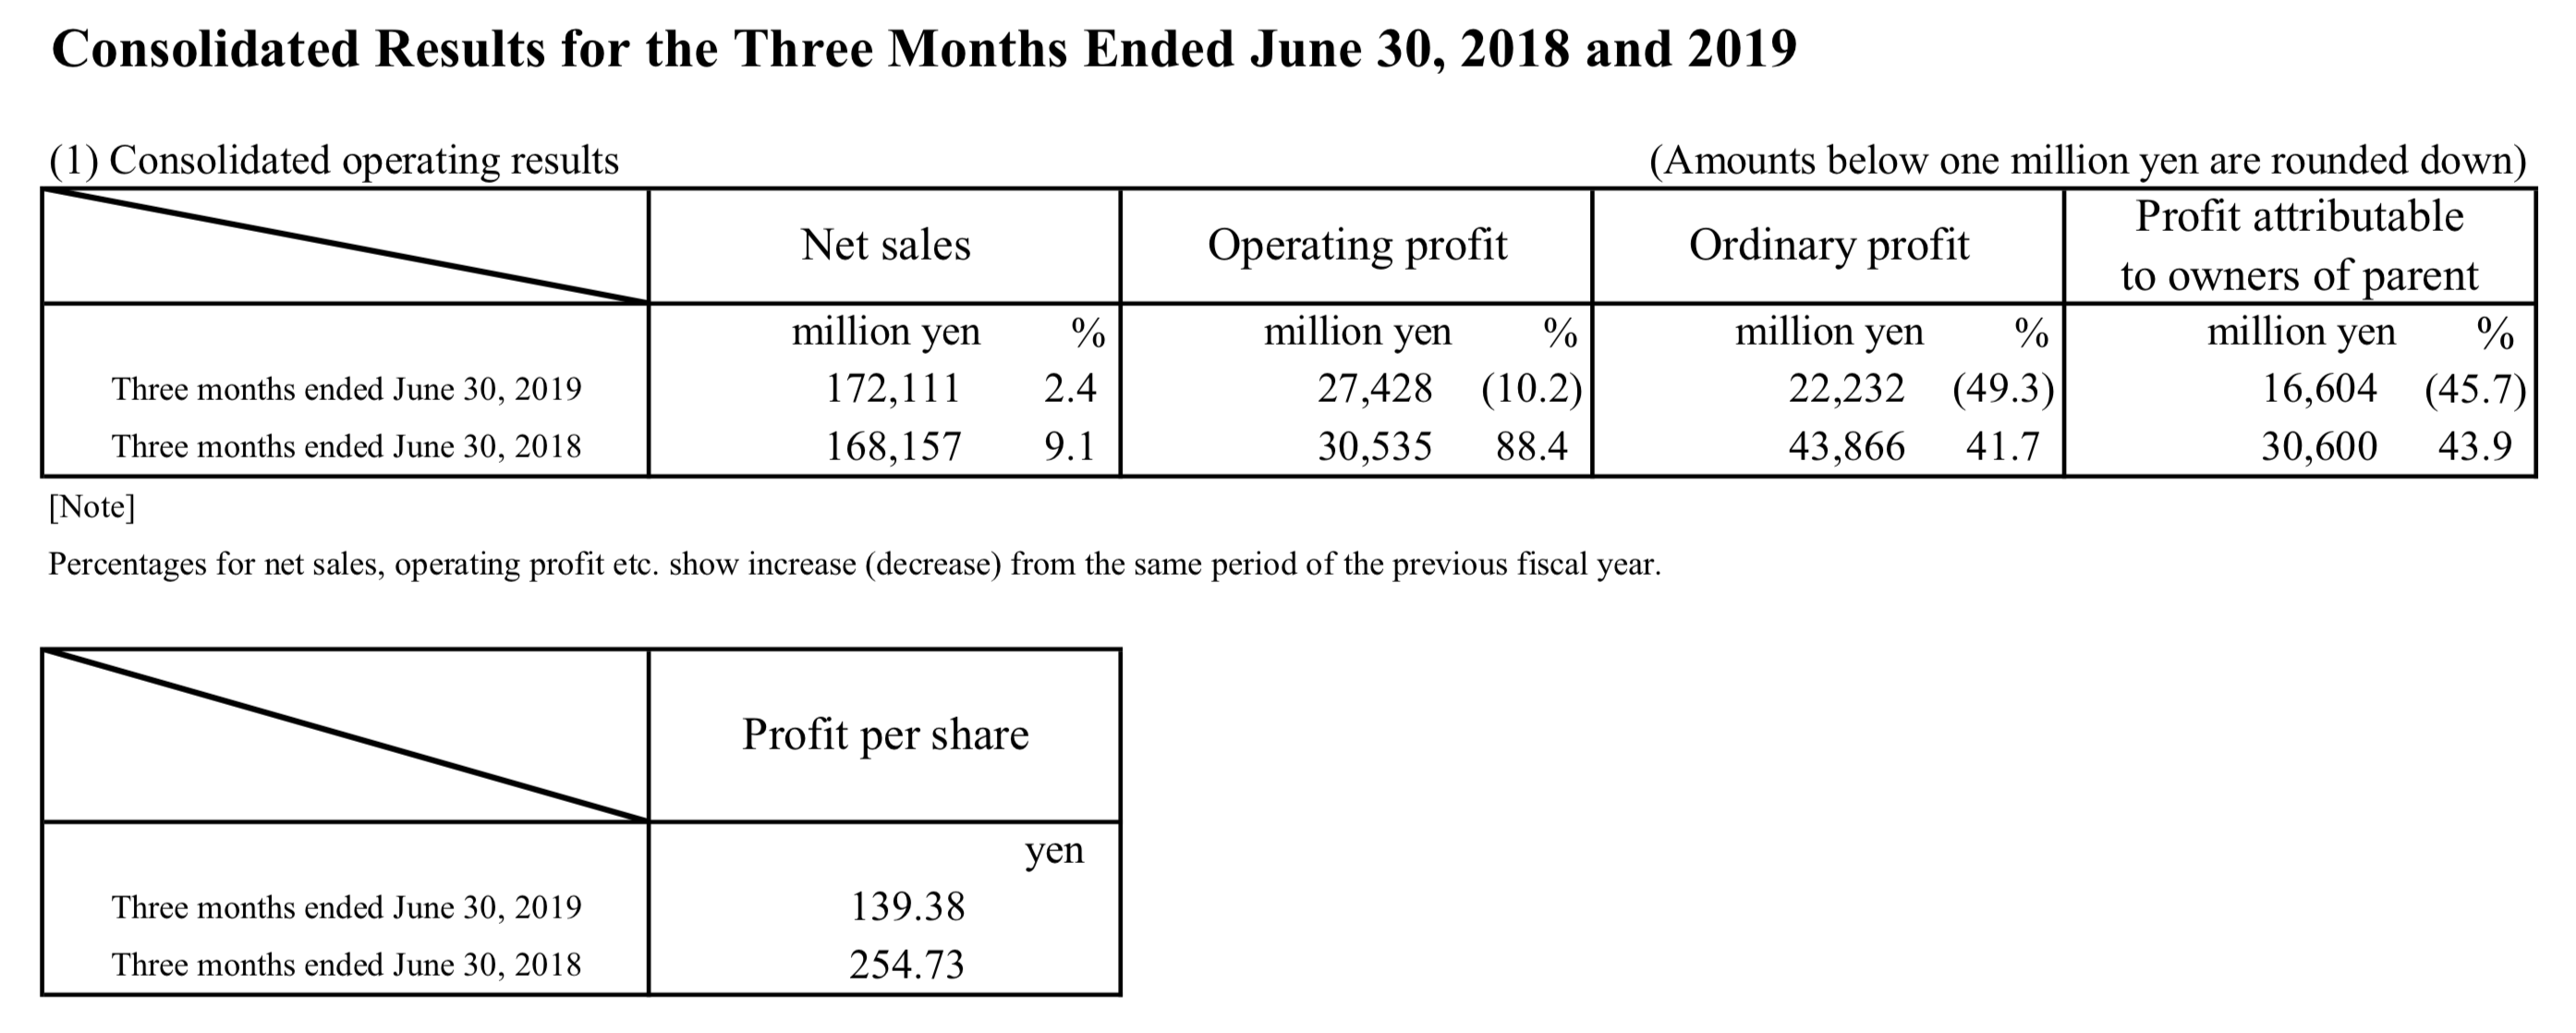 Nintendo's earnings per share saw a 45% decline from the same quarter in 2018.